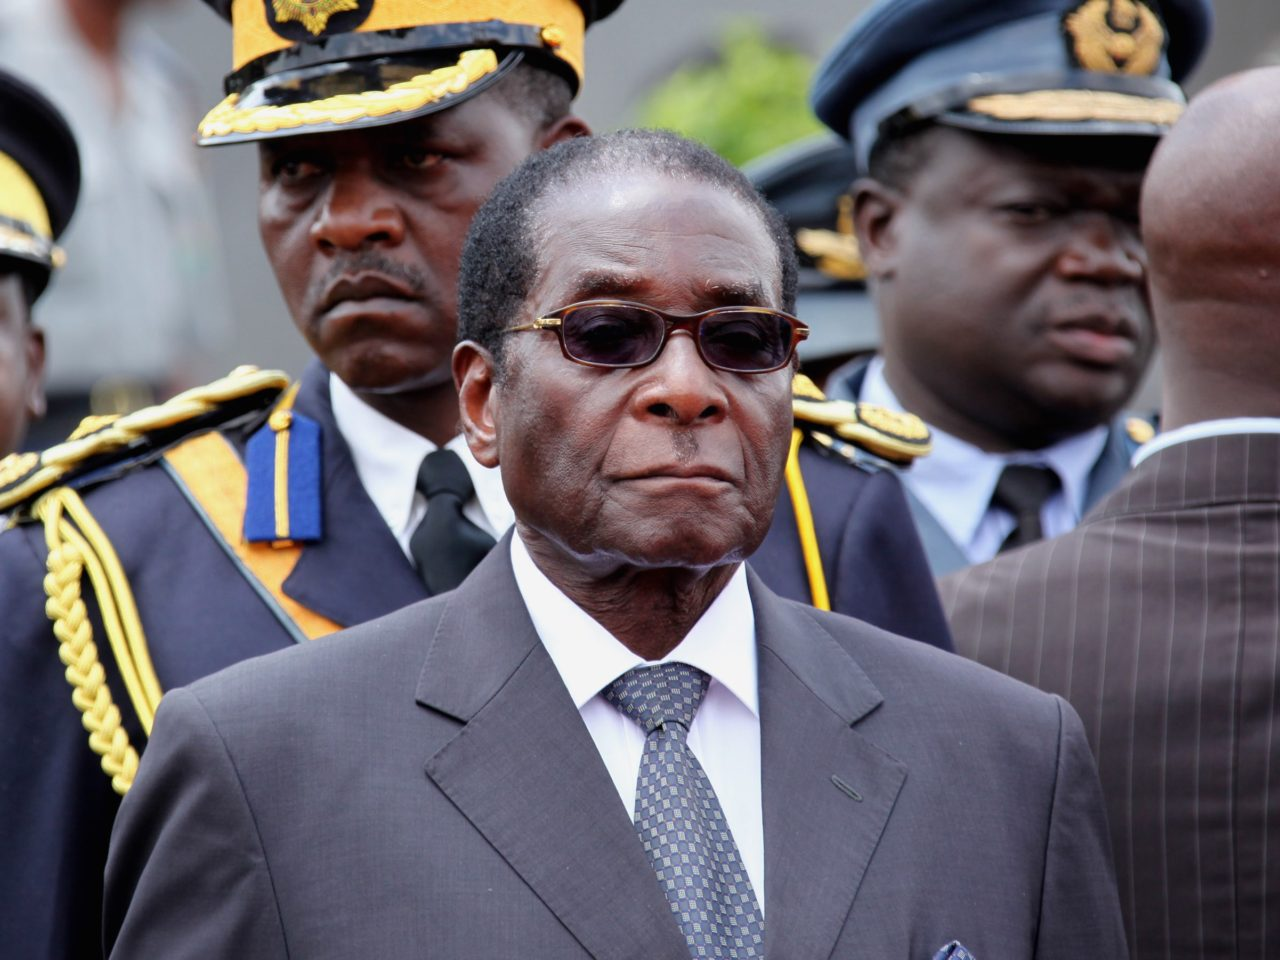 a study of the basic human rights violation in zimbabwe under the rule of robert mugabe Human rights violations have included imprisonment, enforced disappearance, murder, torture, and rape in addition, president robert mugabe's national policies led to a severe economic collapse and grave failure of the national health system.